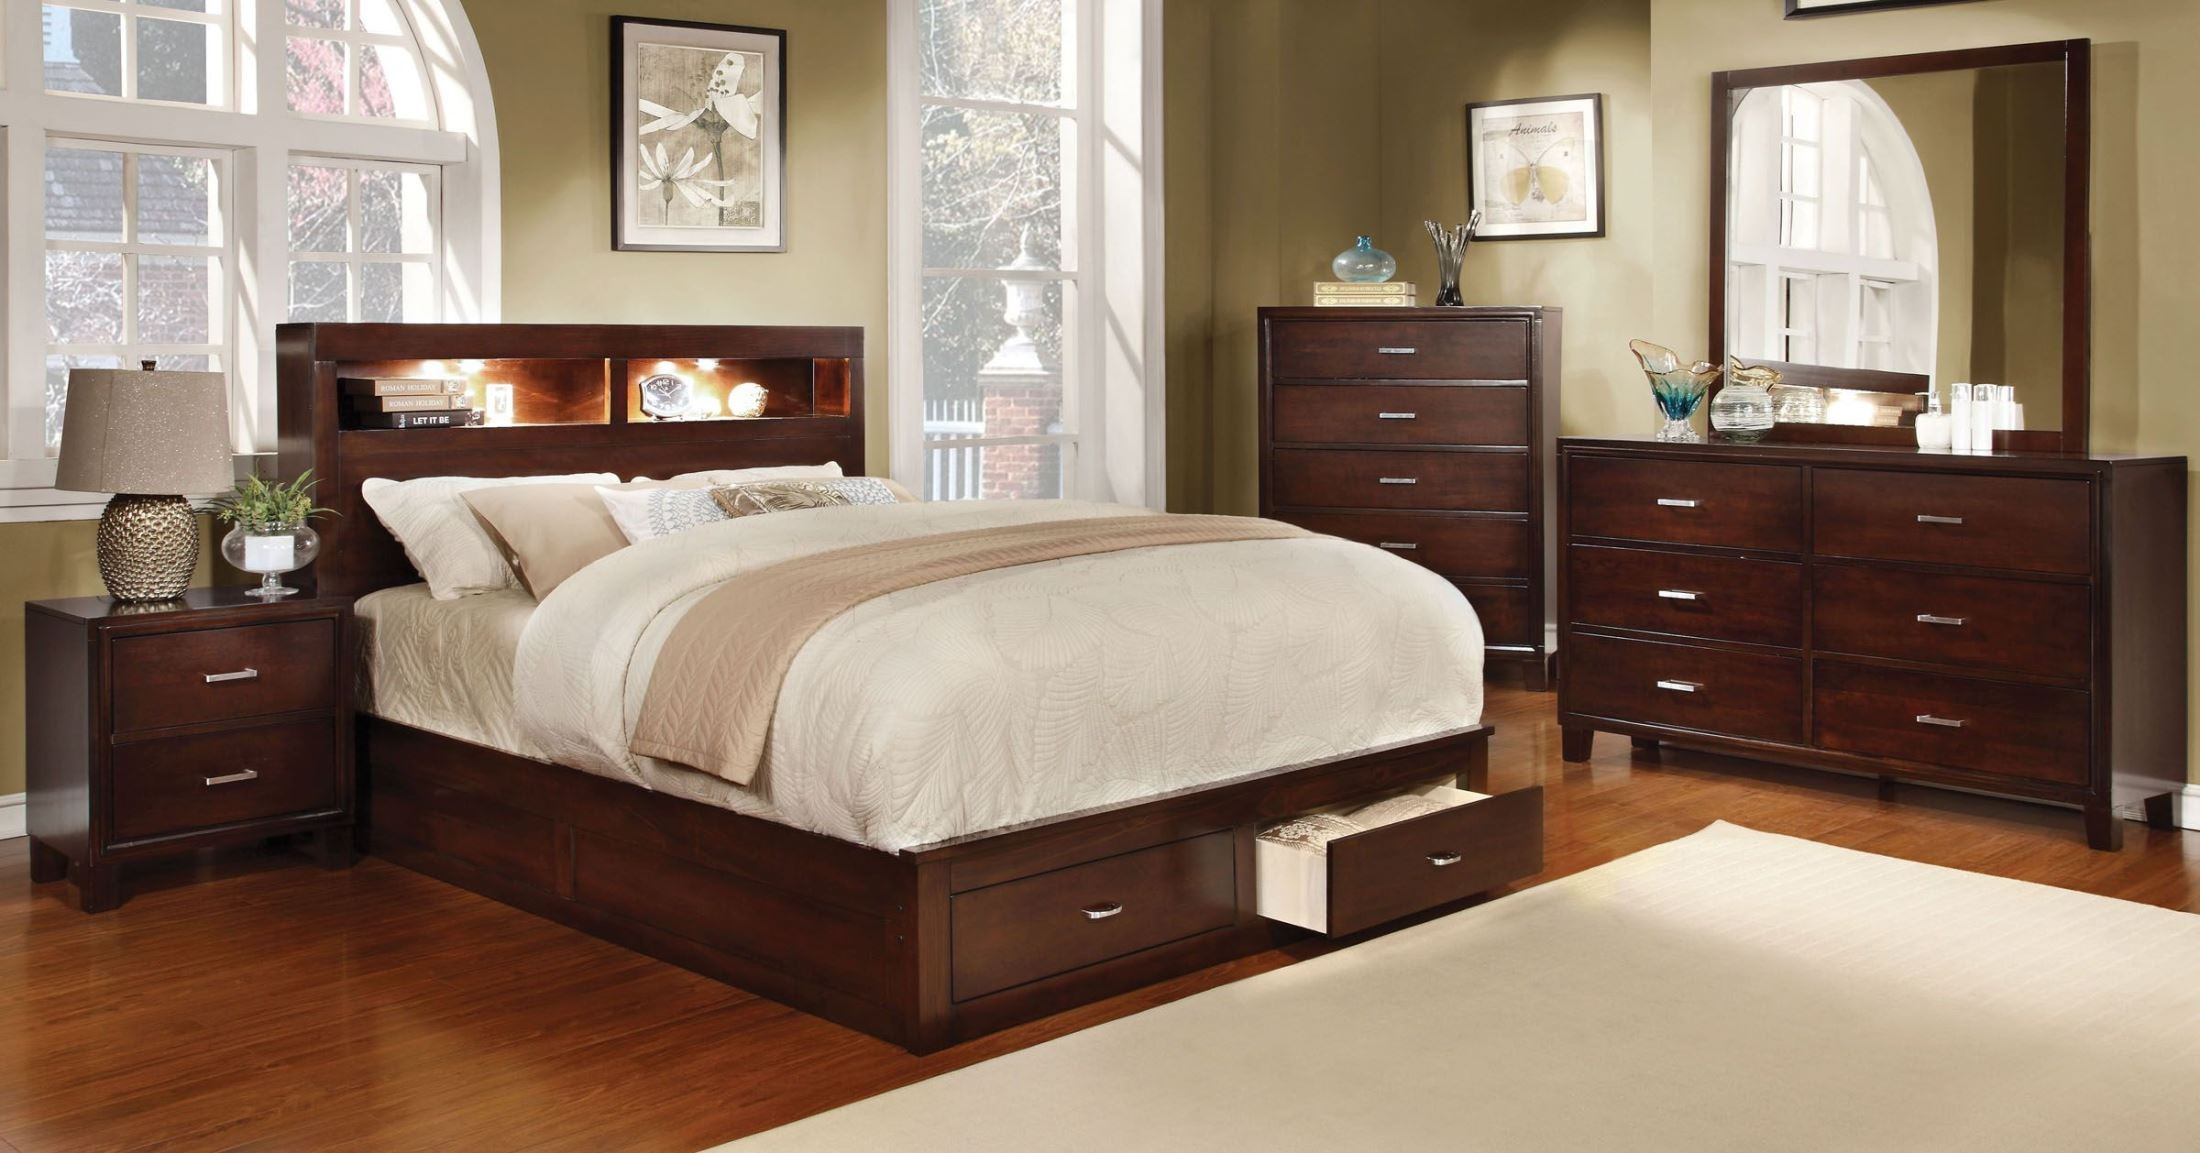 Gerico Ii Brown Cherry King Storage Platform Bed From